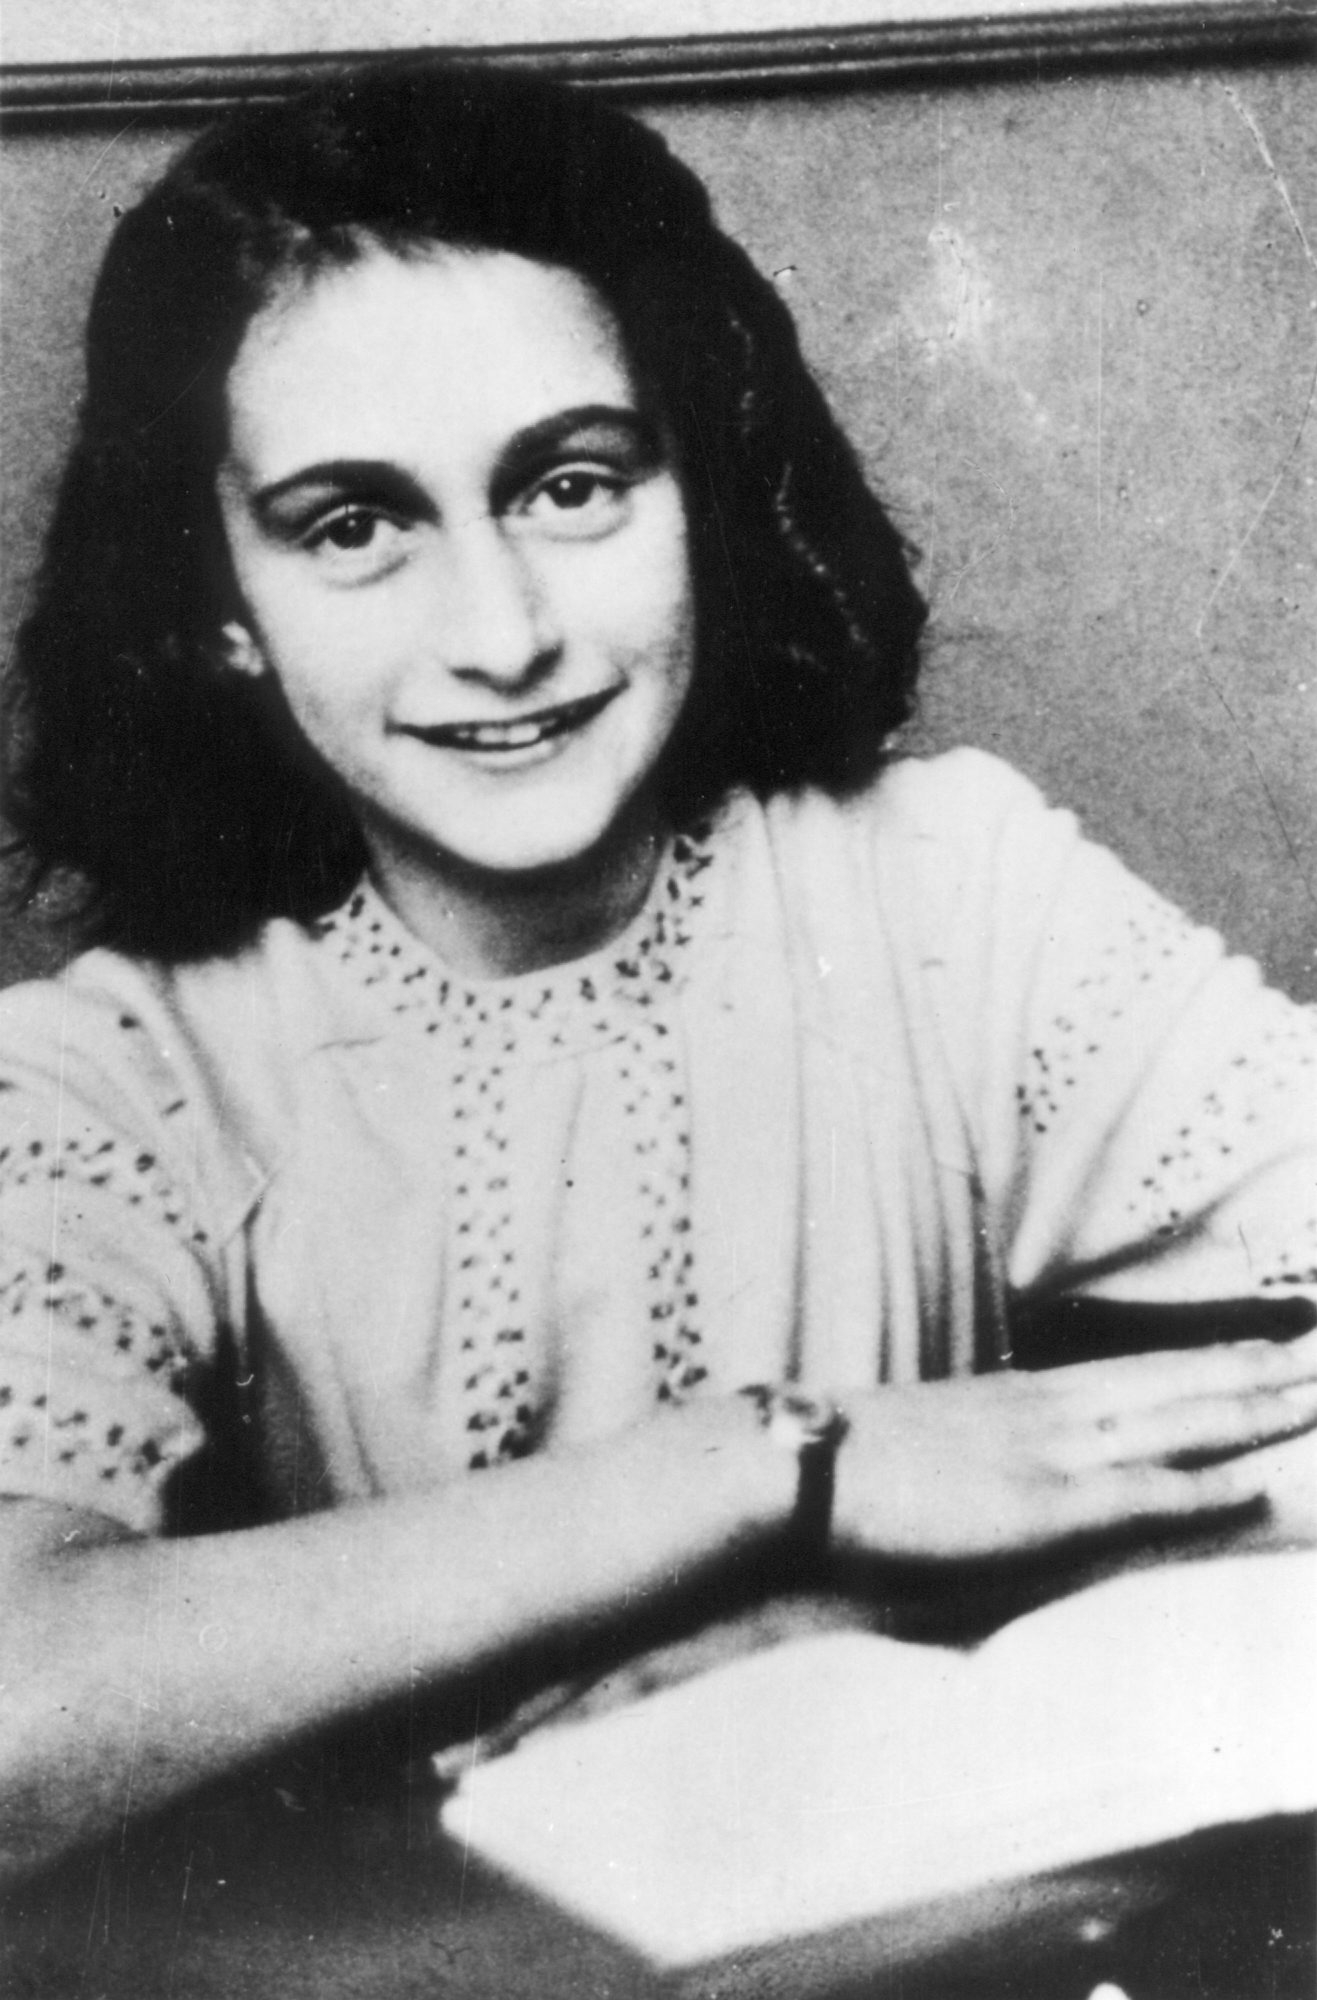 The story of Holocaust victim Anne Frank lives on through the Anne Frank Project.